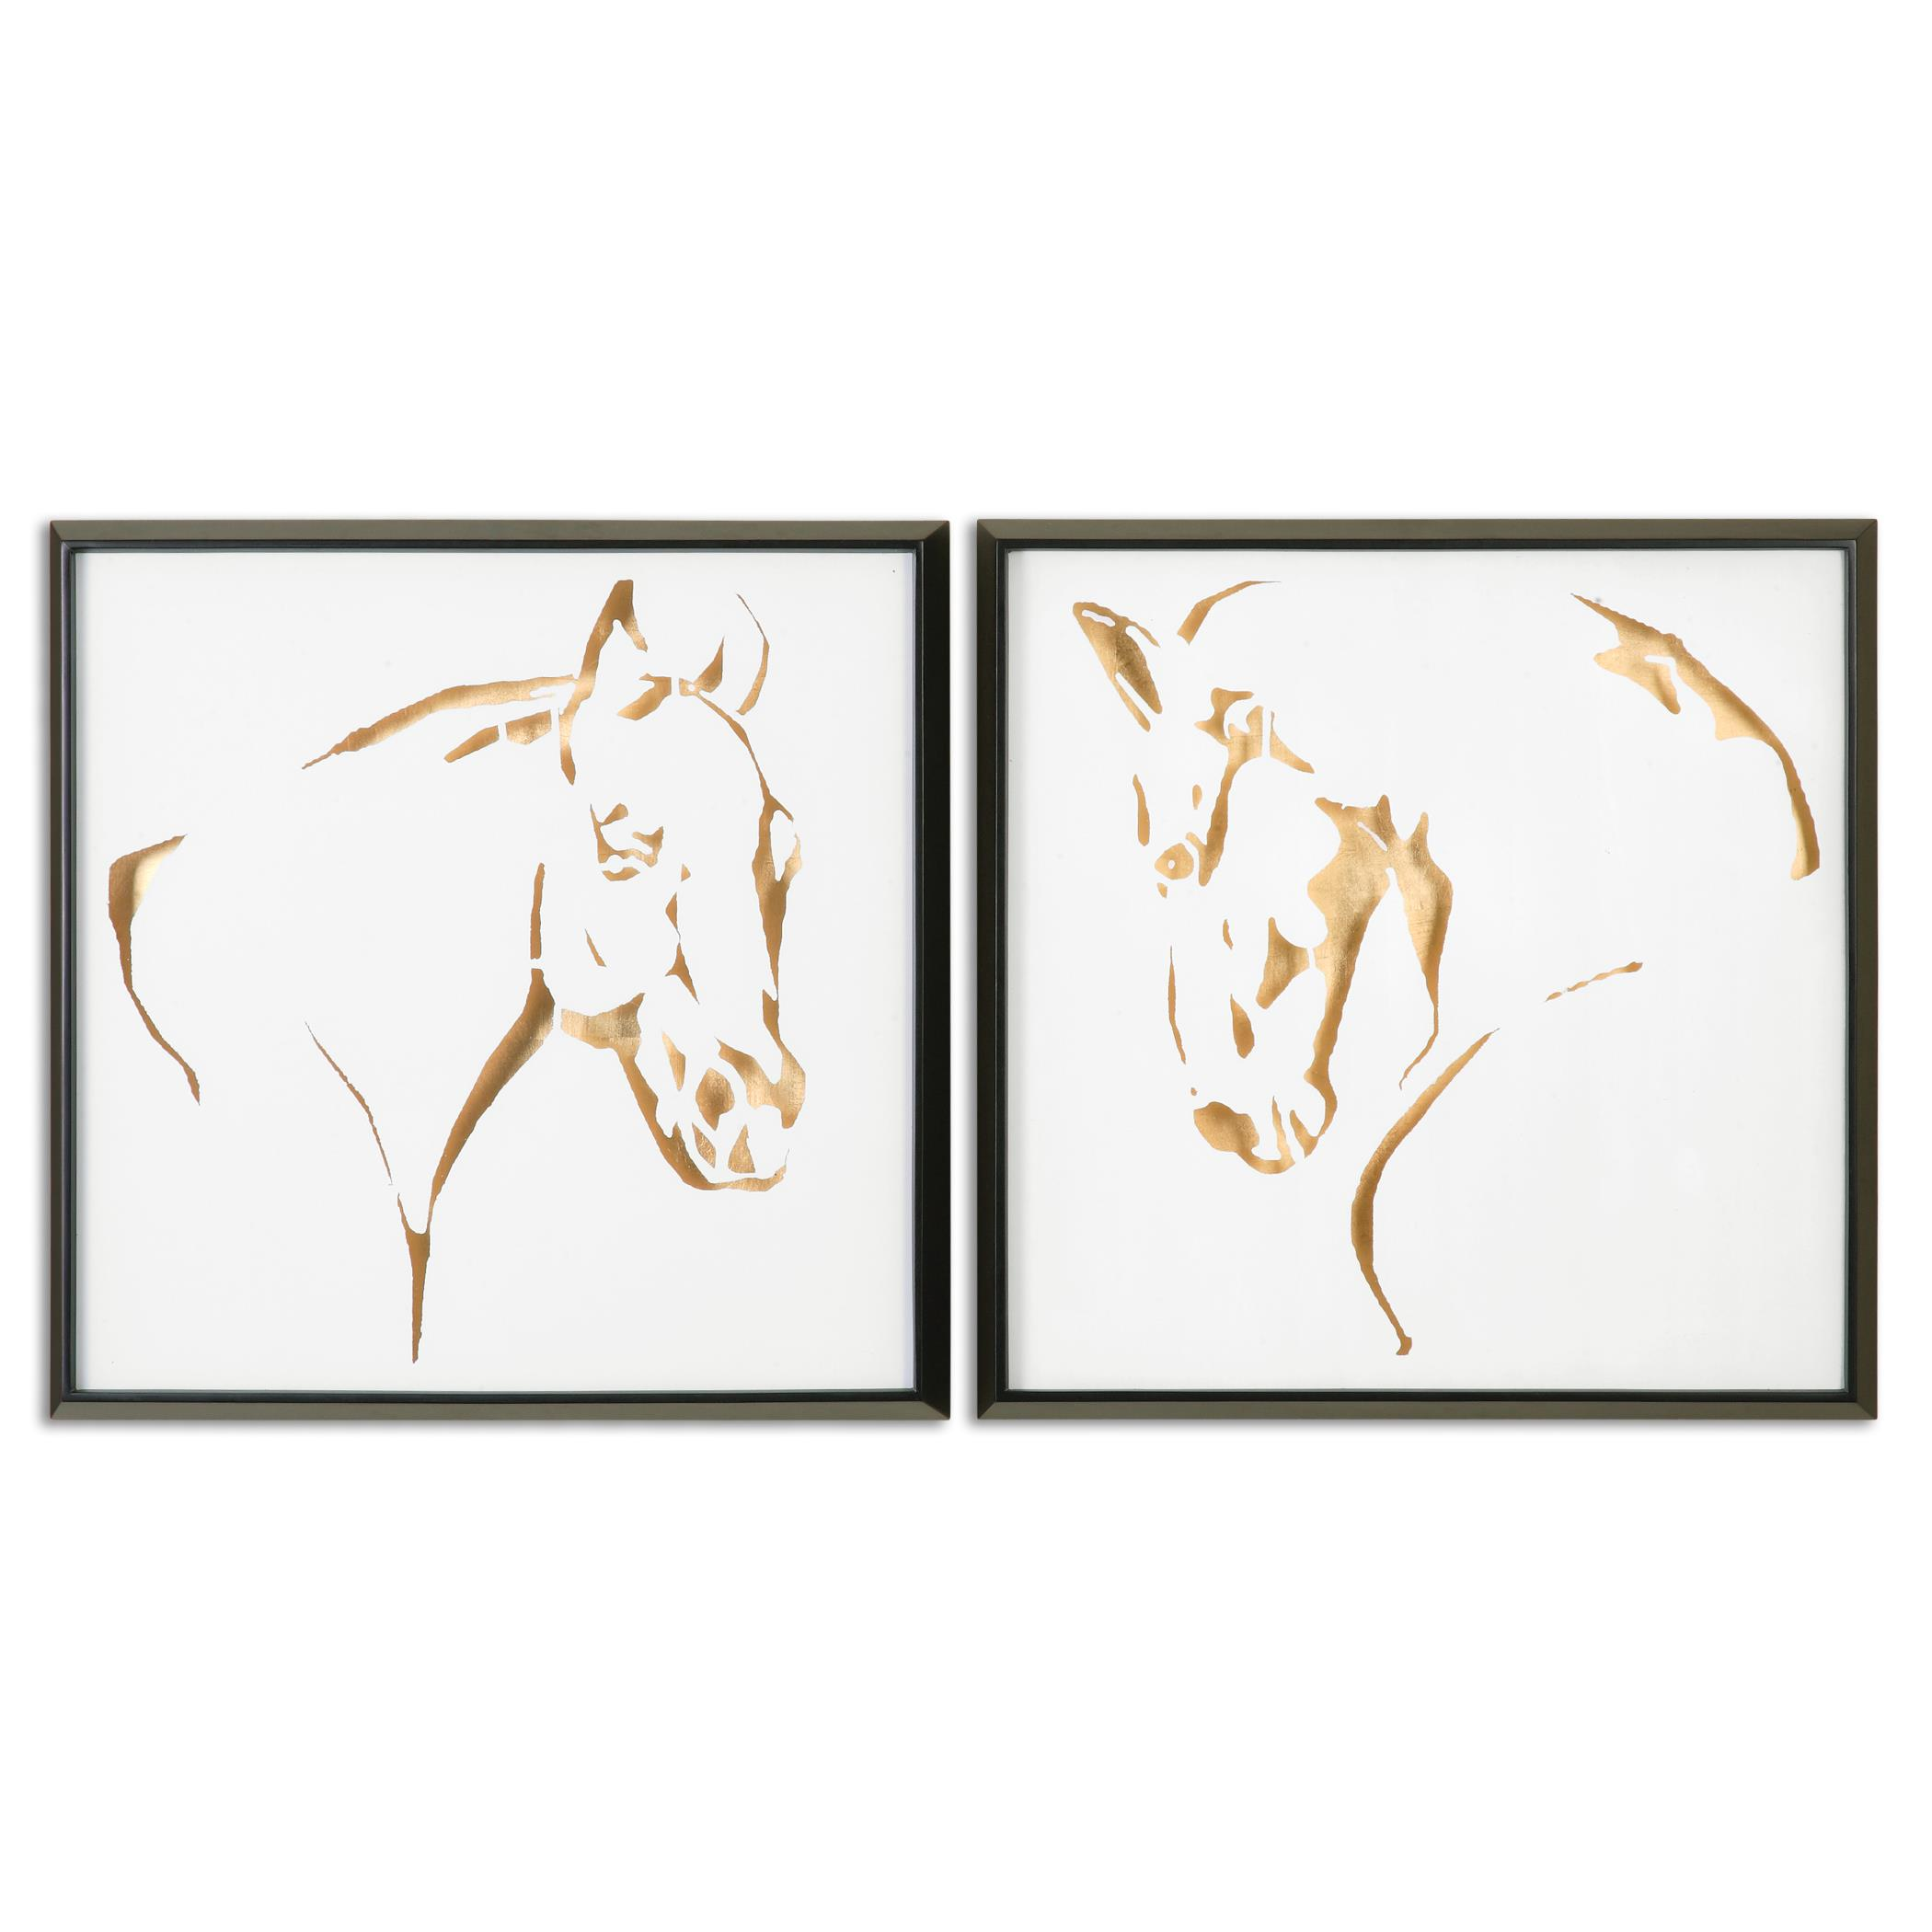 Uttermost Art Golden Horses Framed Art, S/2 - Item Number: 34302